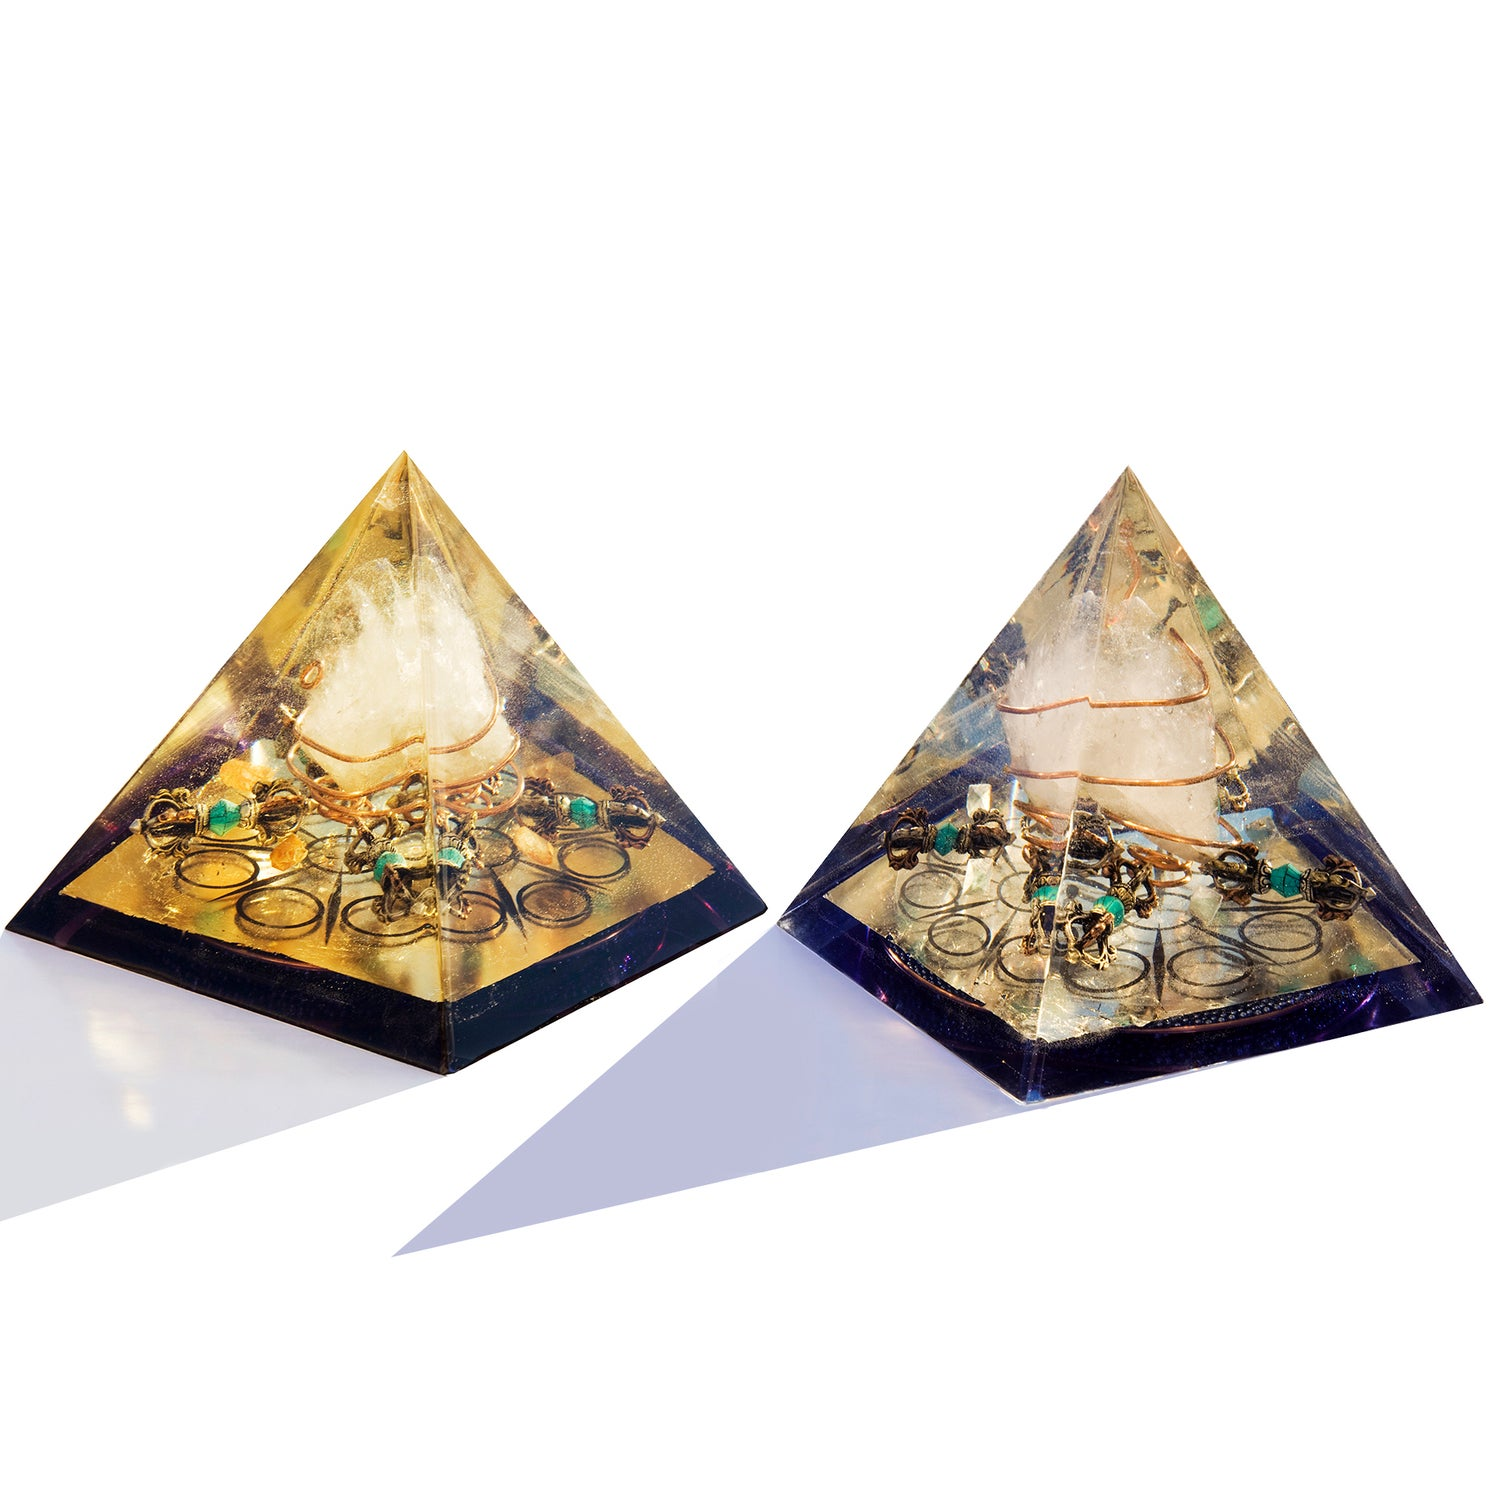 Image of DIVINE COMPLIMENT PYRAMIDS  - Turquoise Dorjes/Buddha's Wheel of Dharma